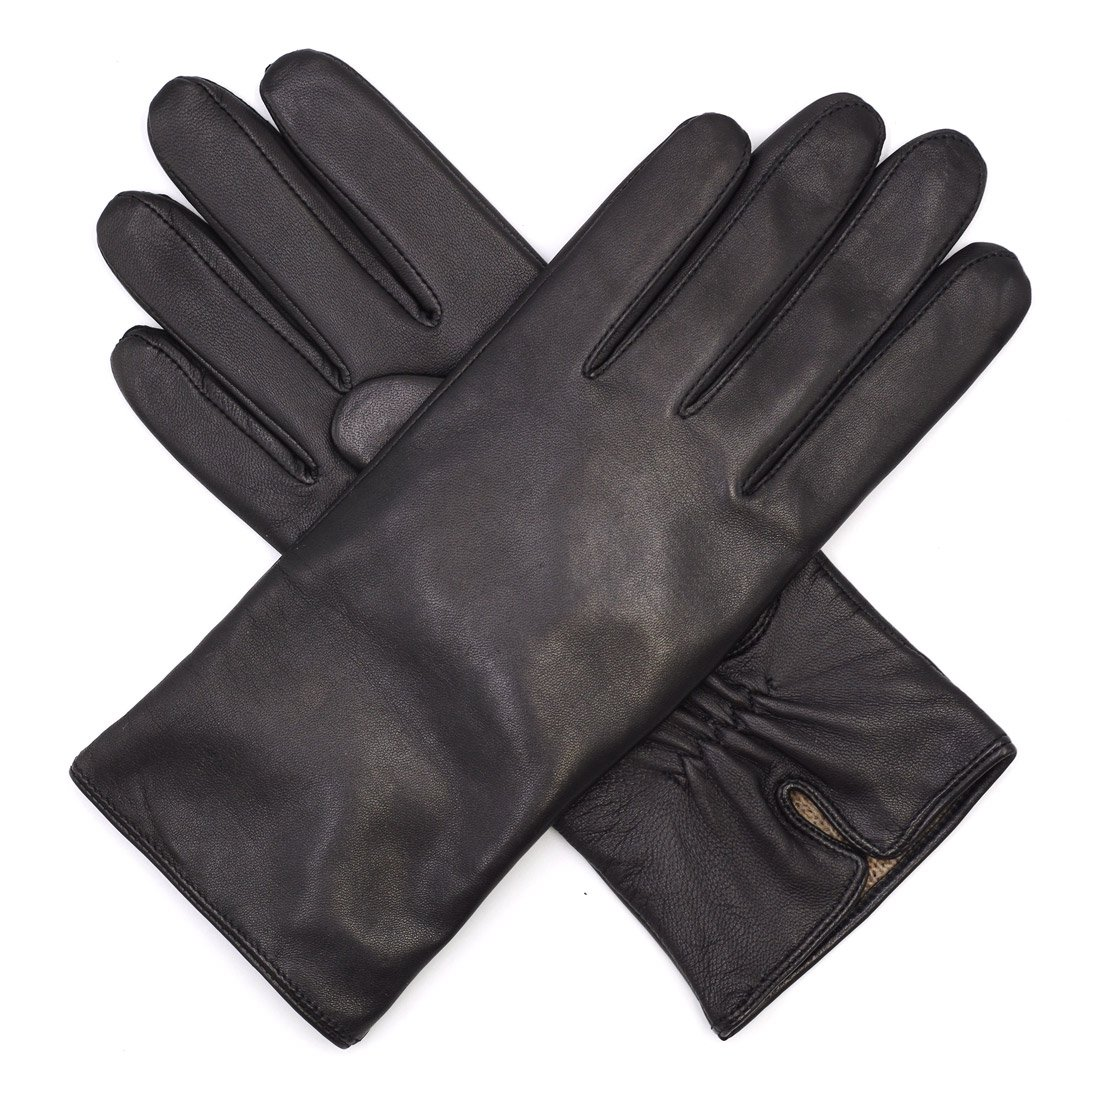 Harssidanzar Womens Luxury Italian Nappa Leather Gloves Vintage Finished Cashmere Lined